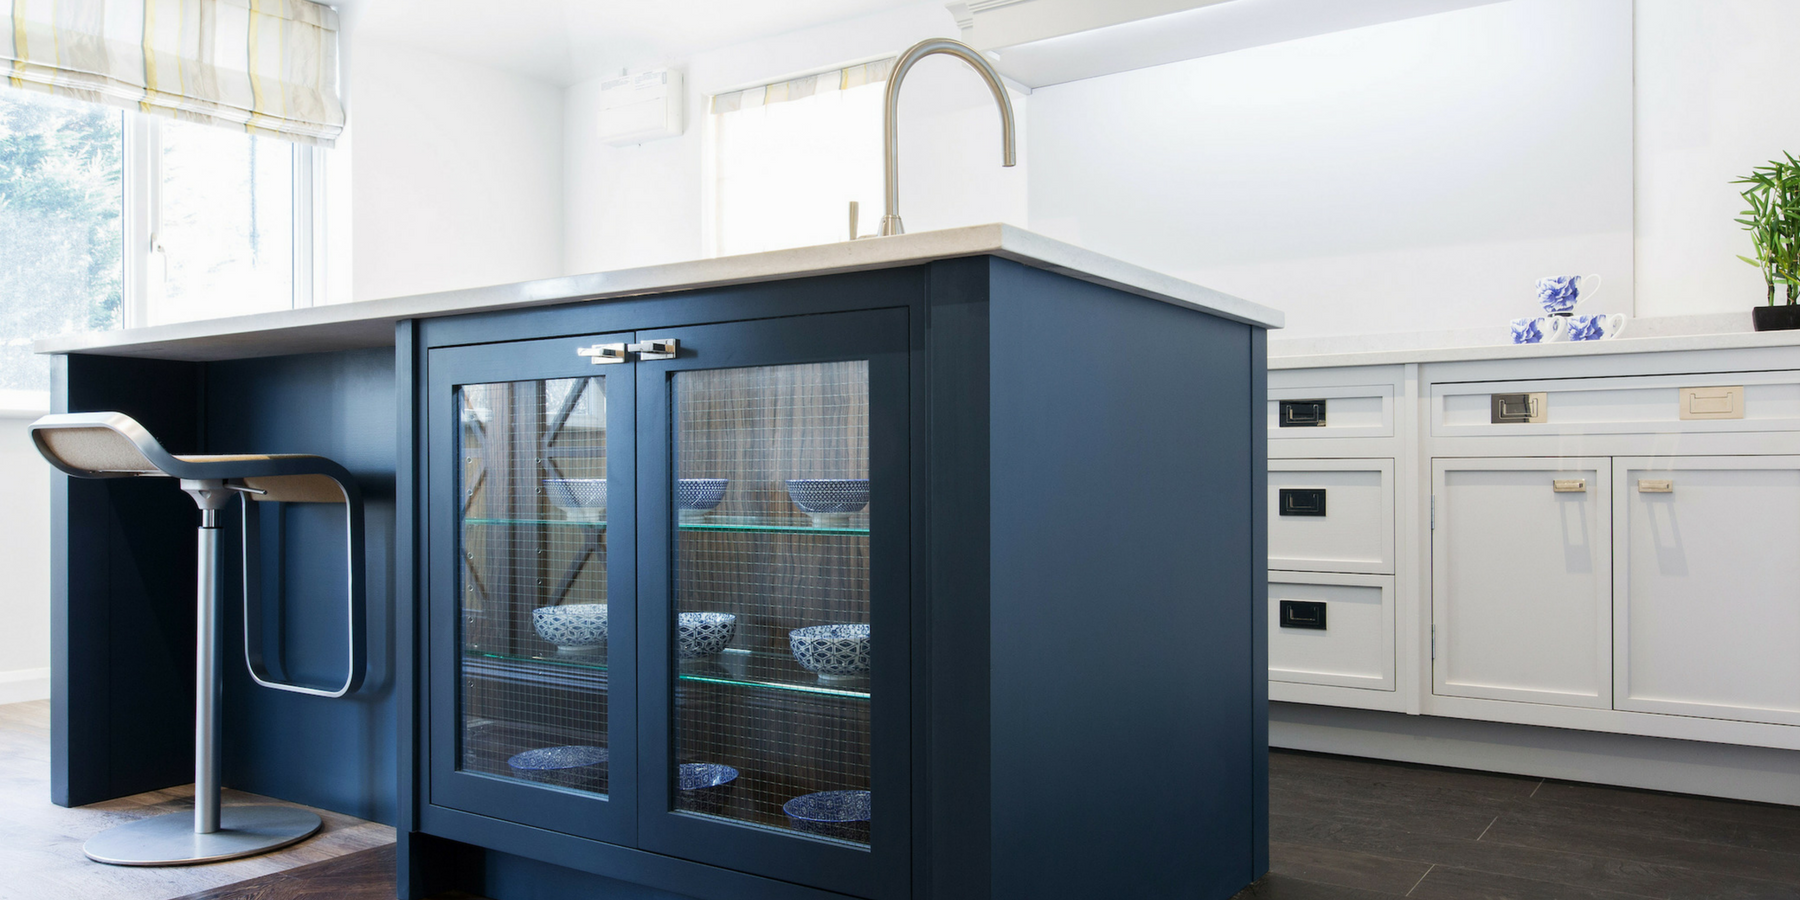 Introducing decolane Kitchen design of sevenoaks